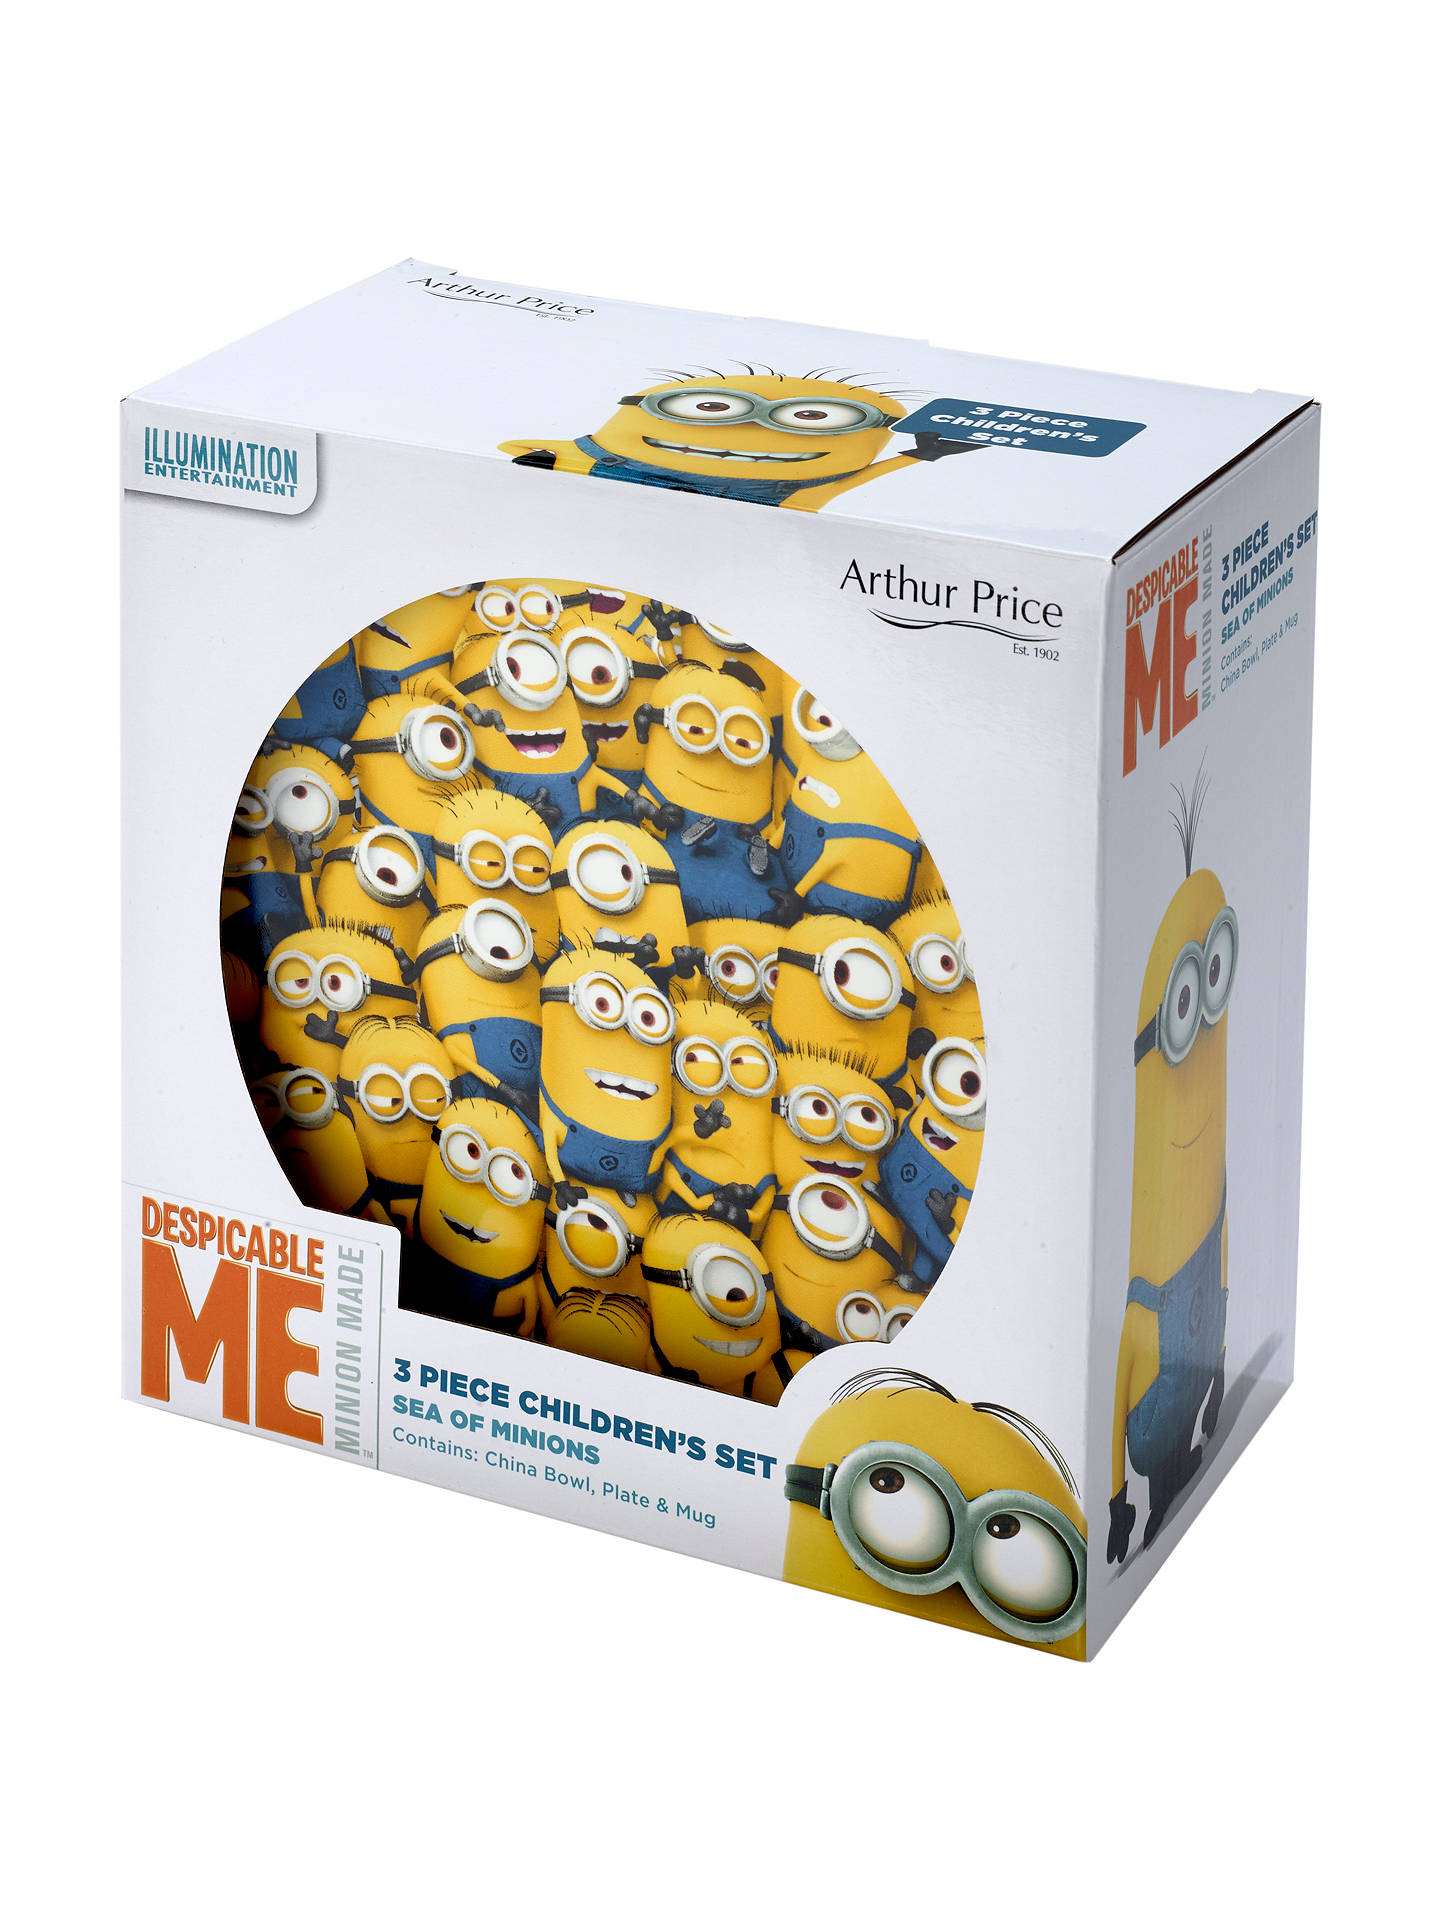 BuyArthur Price Despicable Me China Set, 3 Piece Online at johnlewis.com